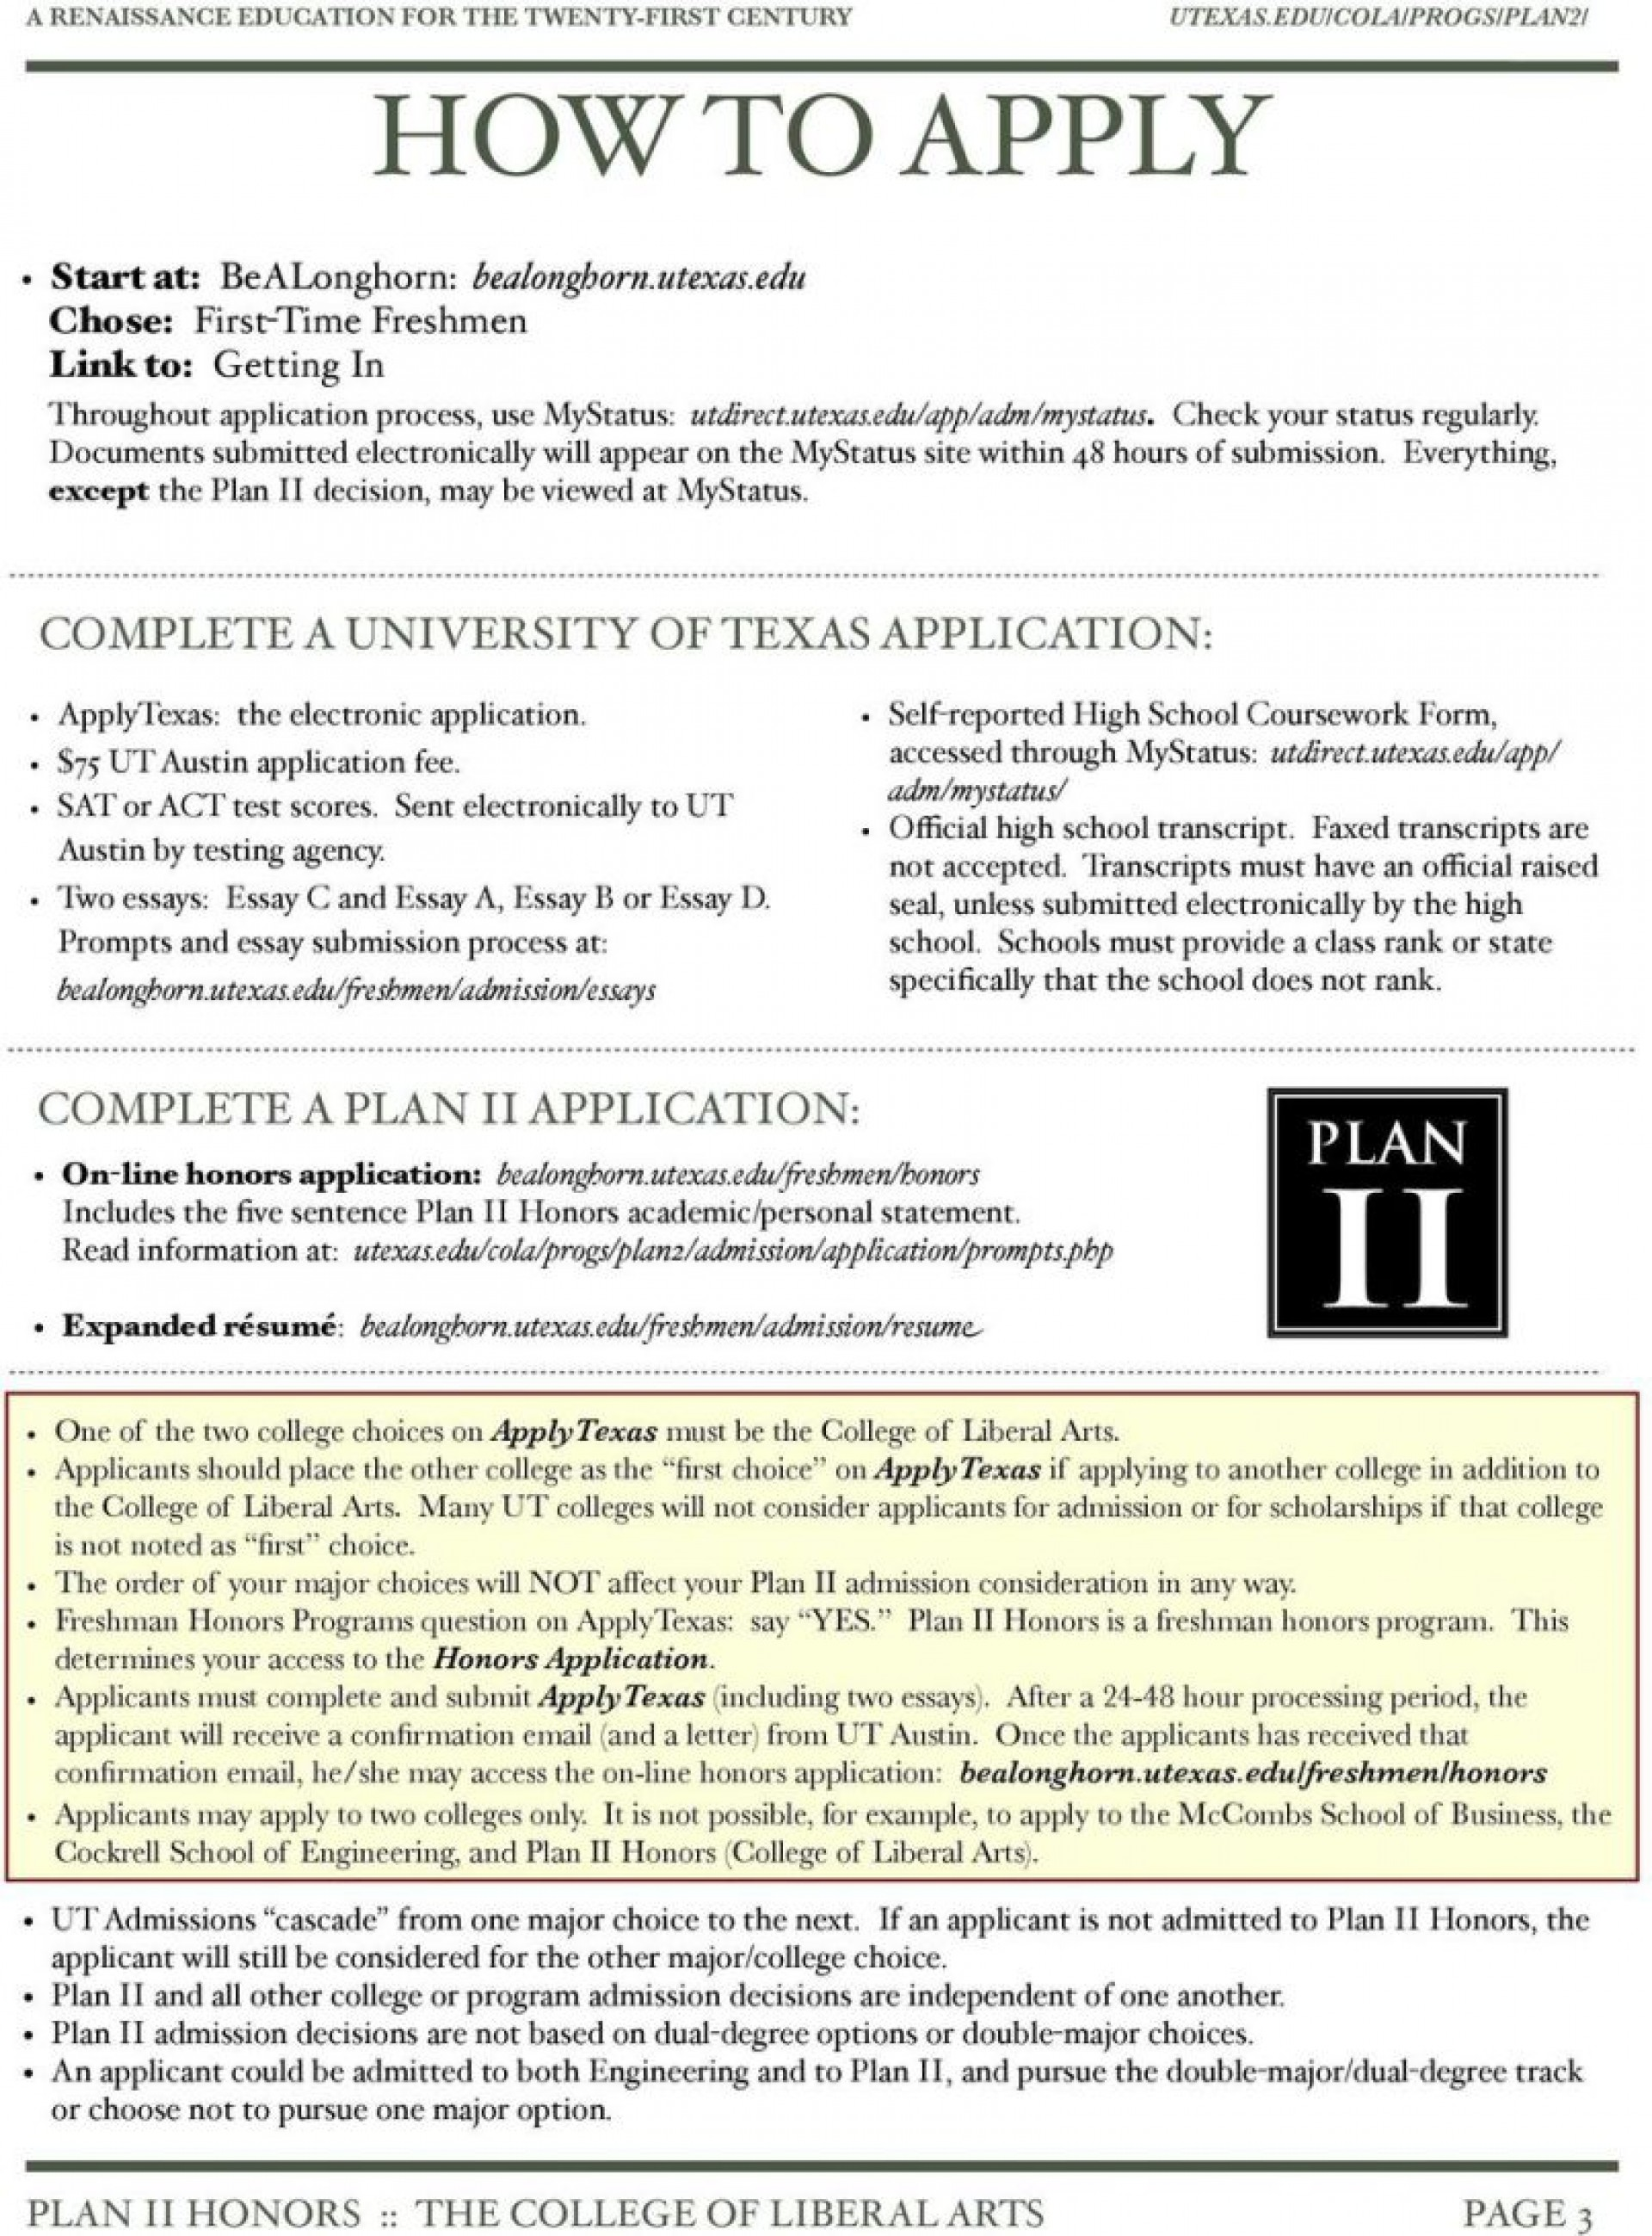 005 Applytexas Essay Prompts Poemdoc Or Apply Texas Topics P Fearsome Format Fall 2018 Length 1920